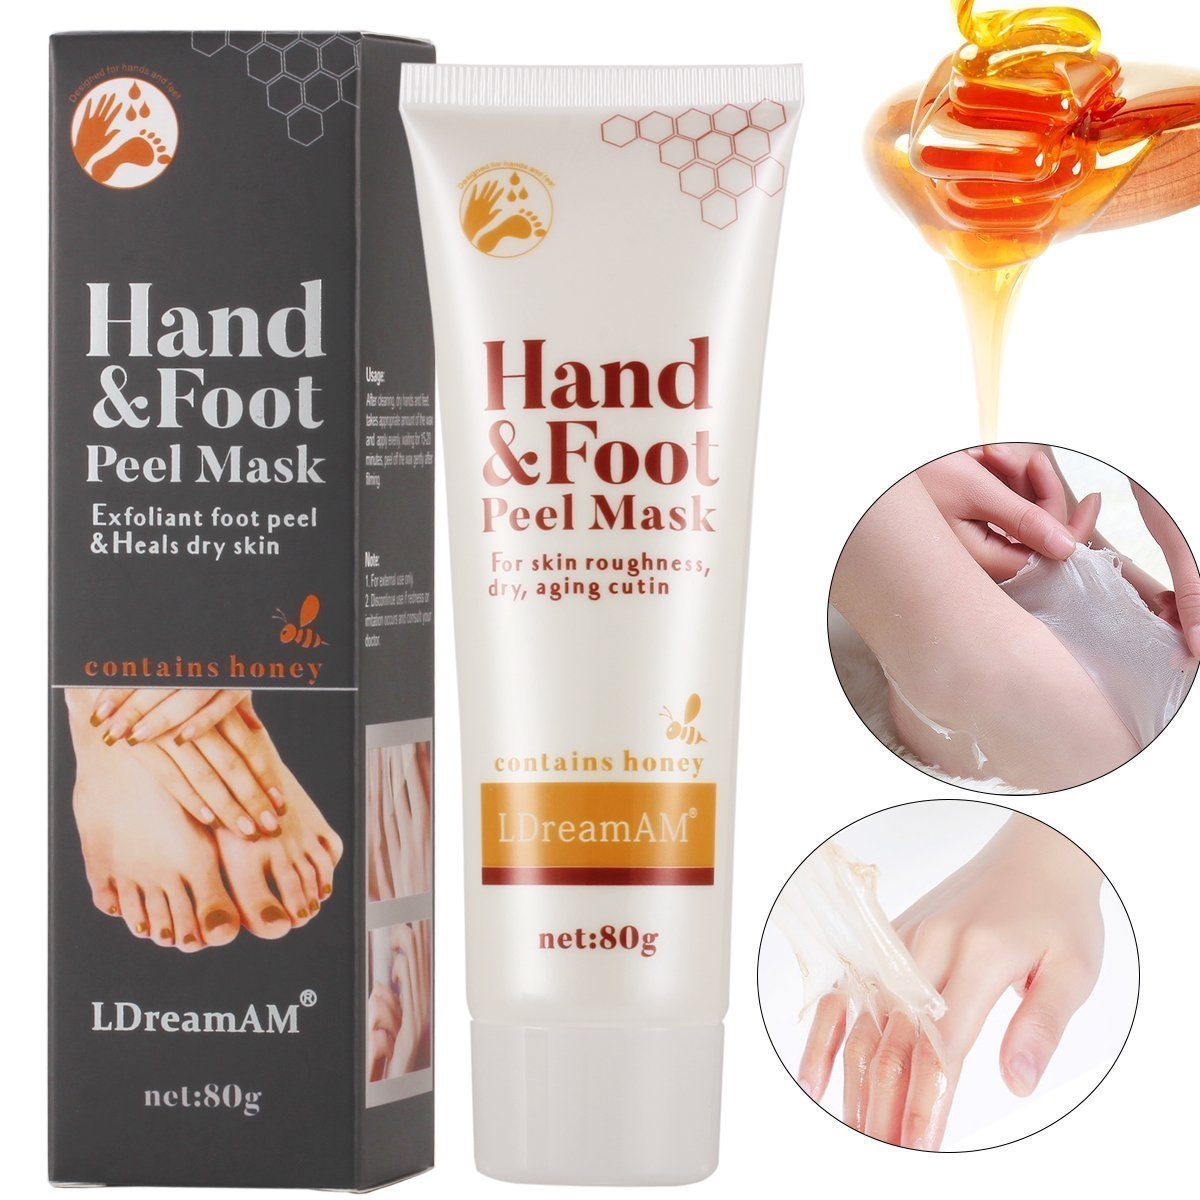 Exfoliating Foot Mask Peeling Foot Mask Moisturizing Socks, Mask, Spa Moisturising Mask for Dry Skin, Hydrating, Repair and Rejuvenate Your Foot Feet and Hands LDREAMAM